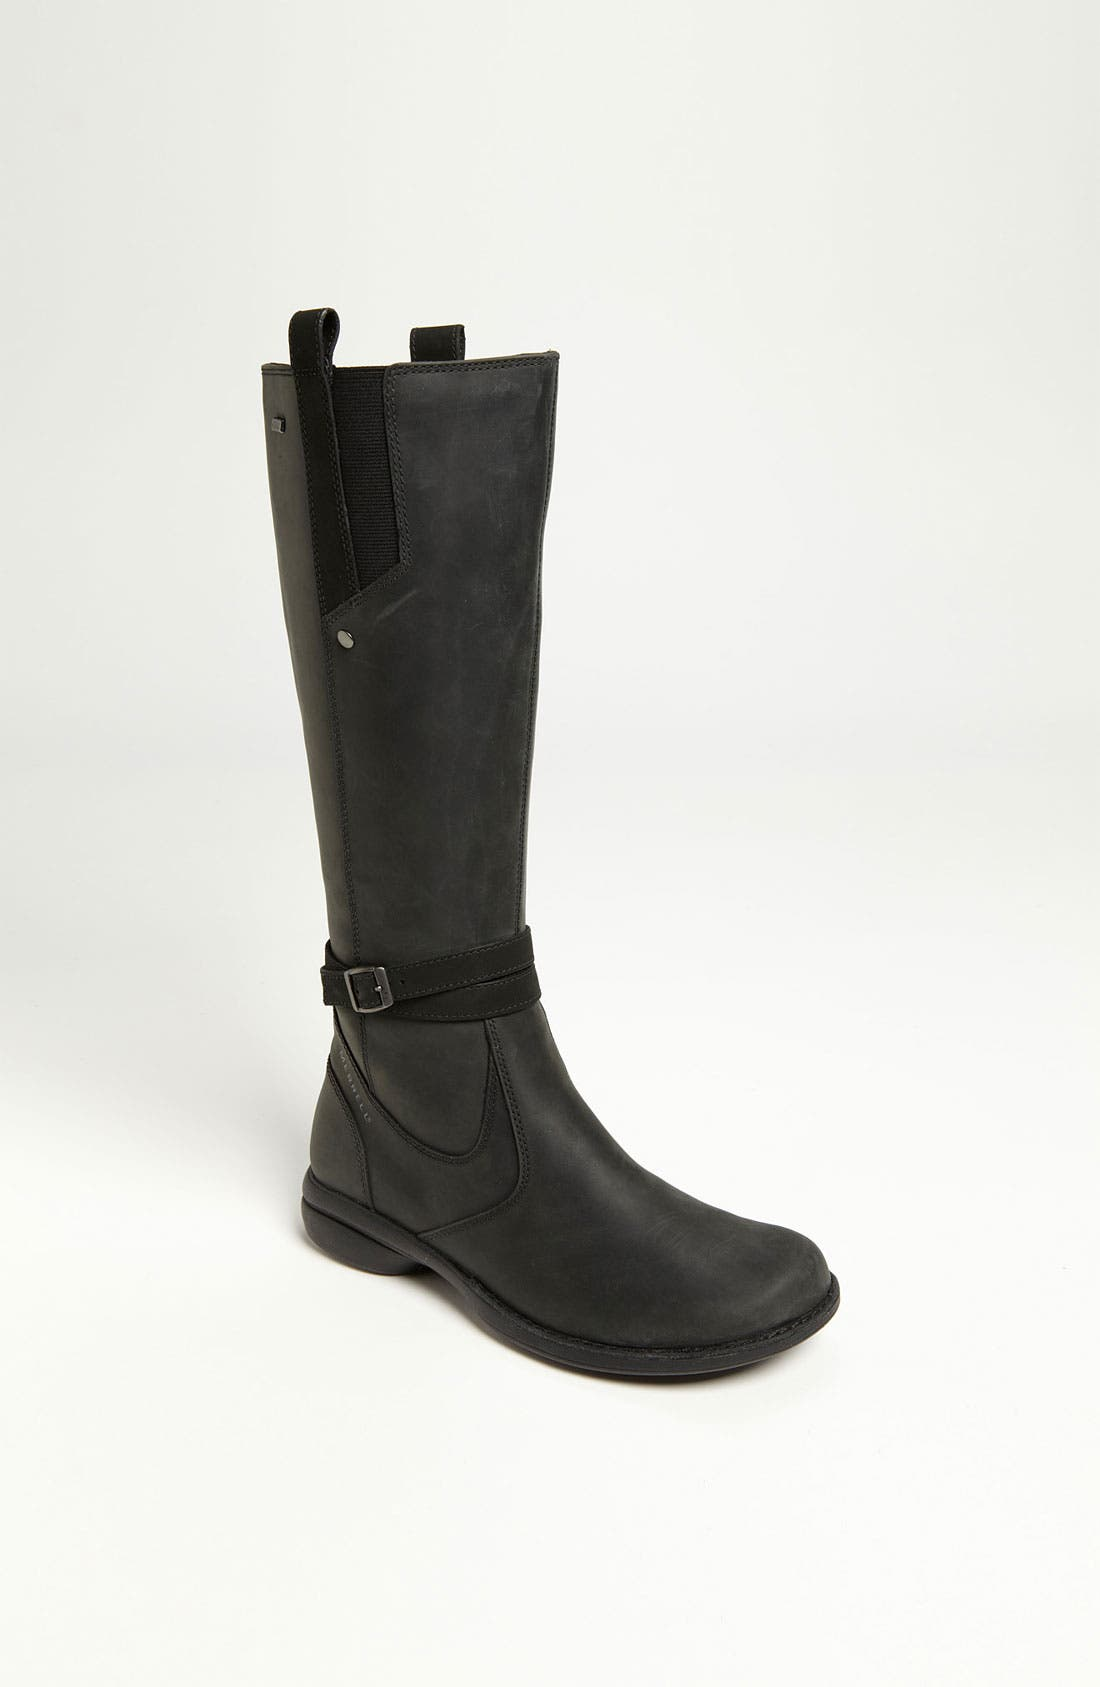 Alternate Image 1 Selected - Merrell 'Captiva Strap' Waterproof Boot